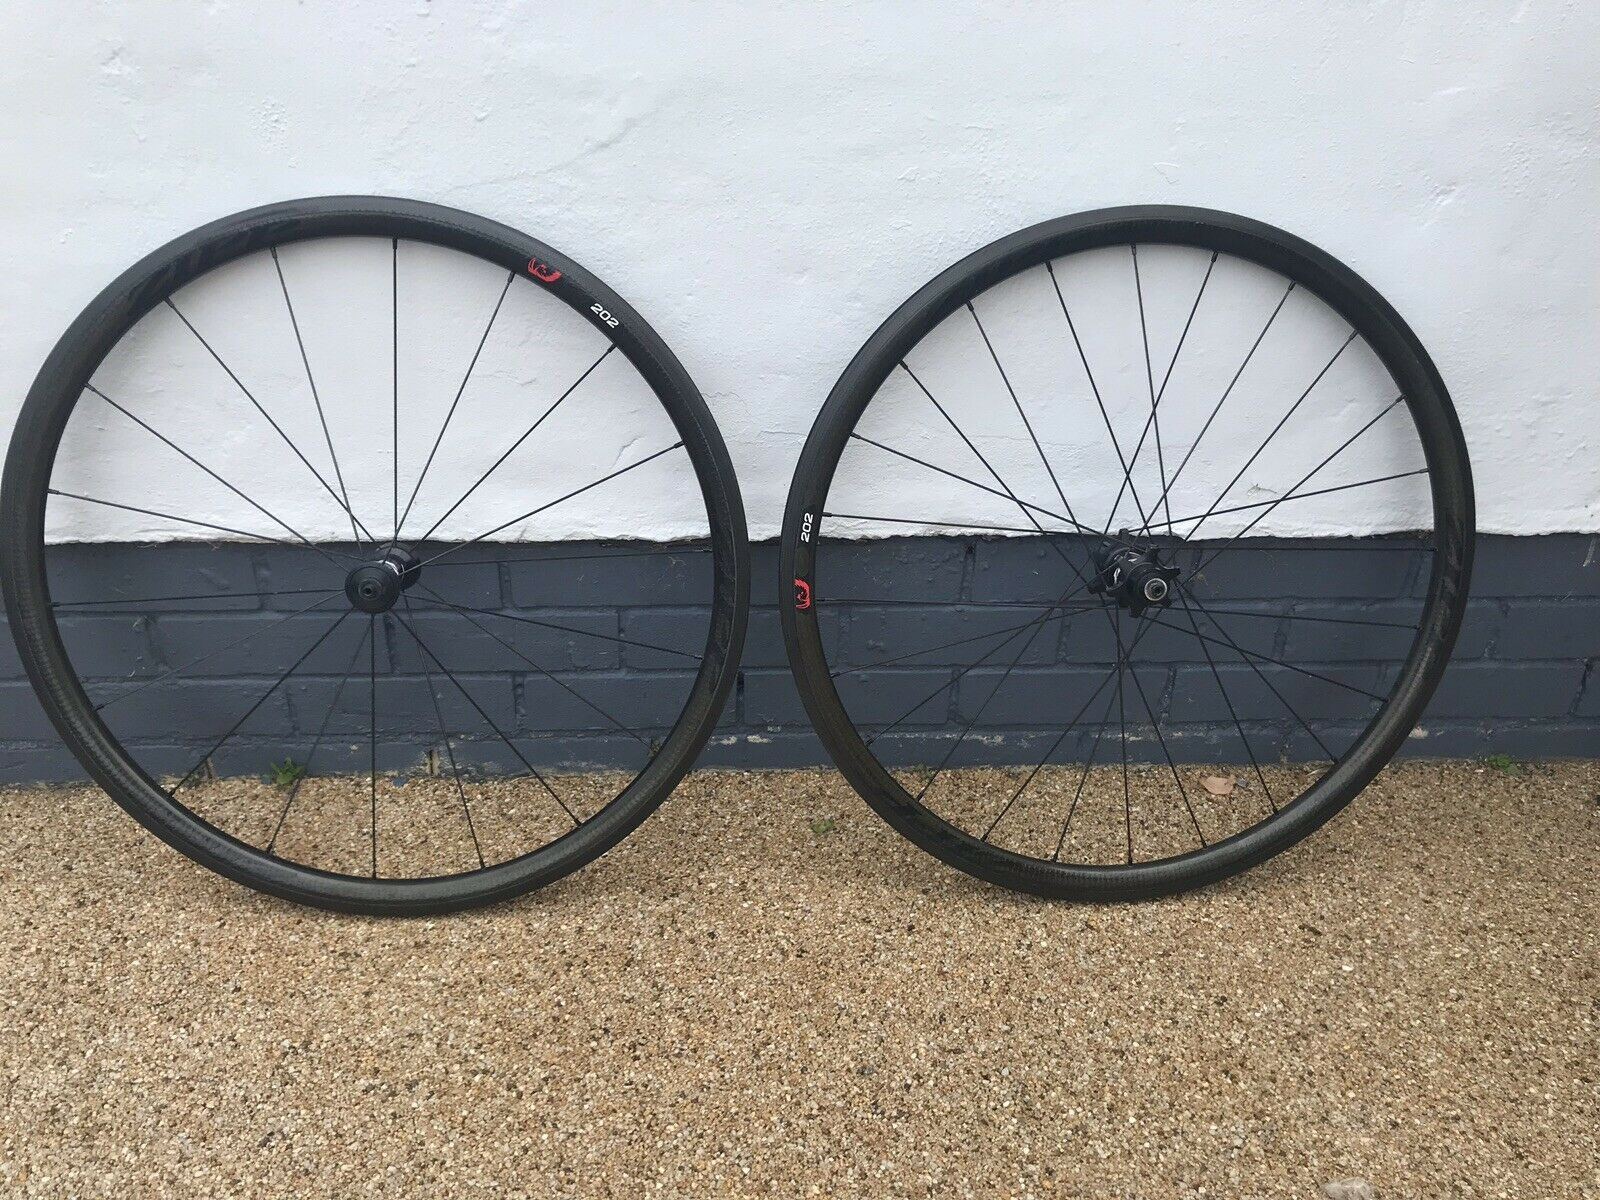 eBay Deals - Cheap Carbon Clincher Wheelsets | Cycling deals from Dealclincher